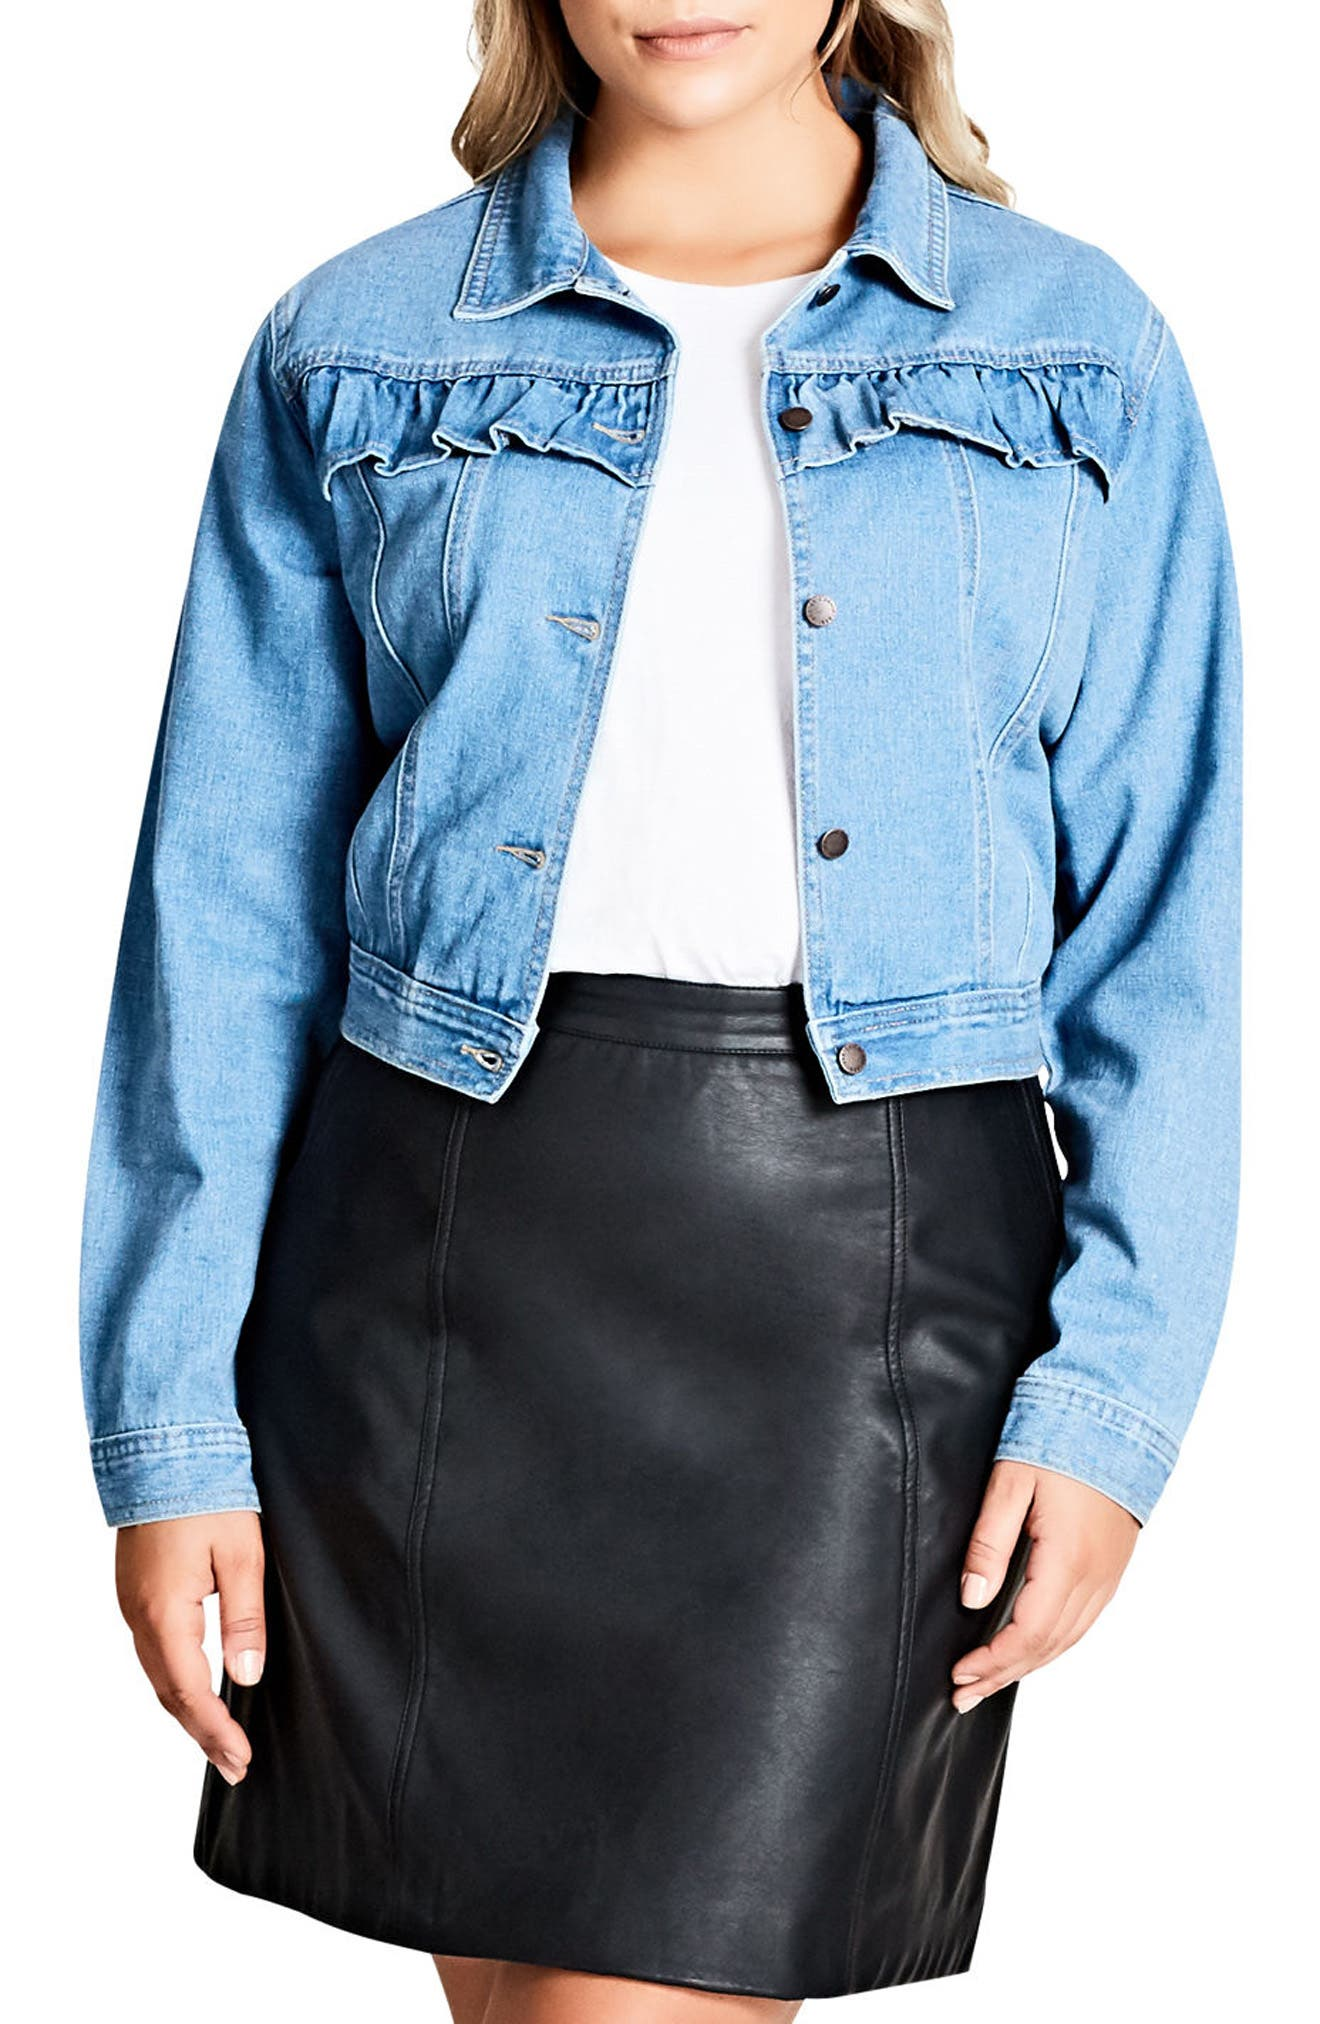 Main Image - City Chic Ruffle Denim Jacket (Plus Size)